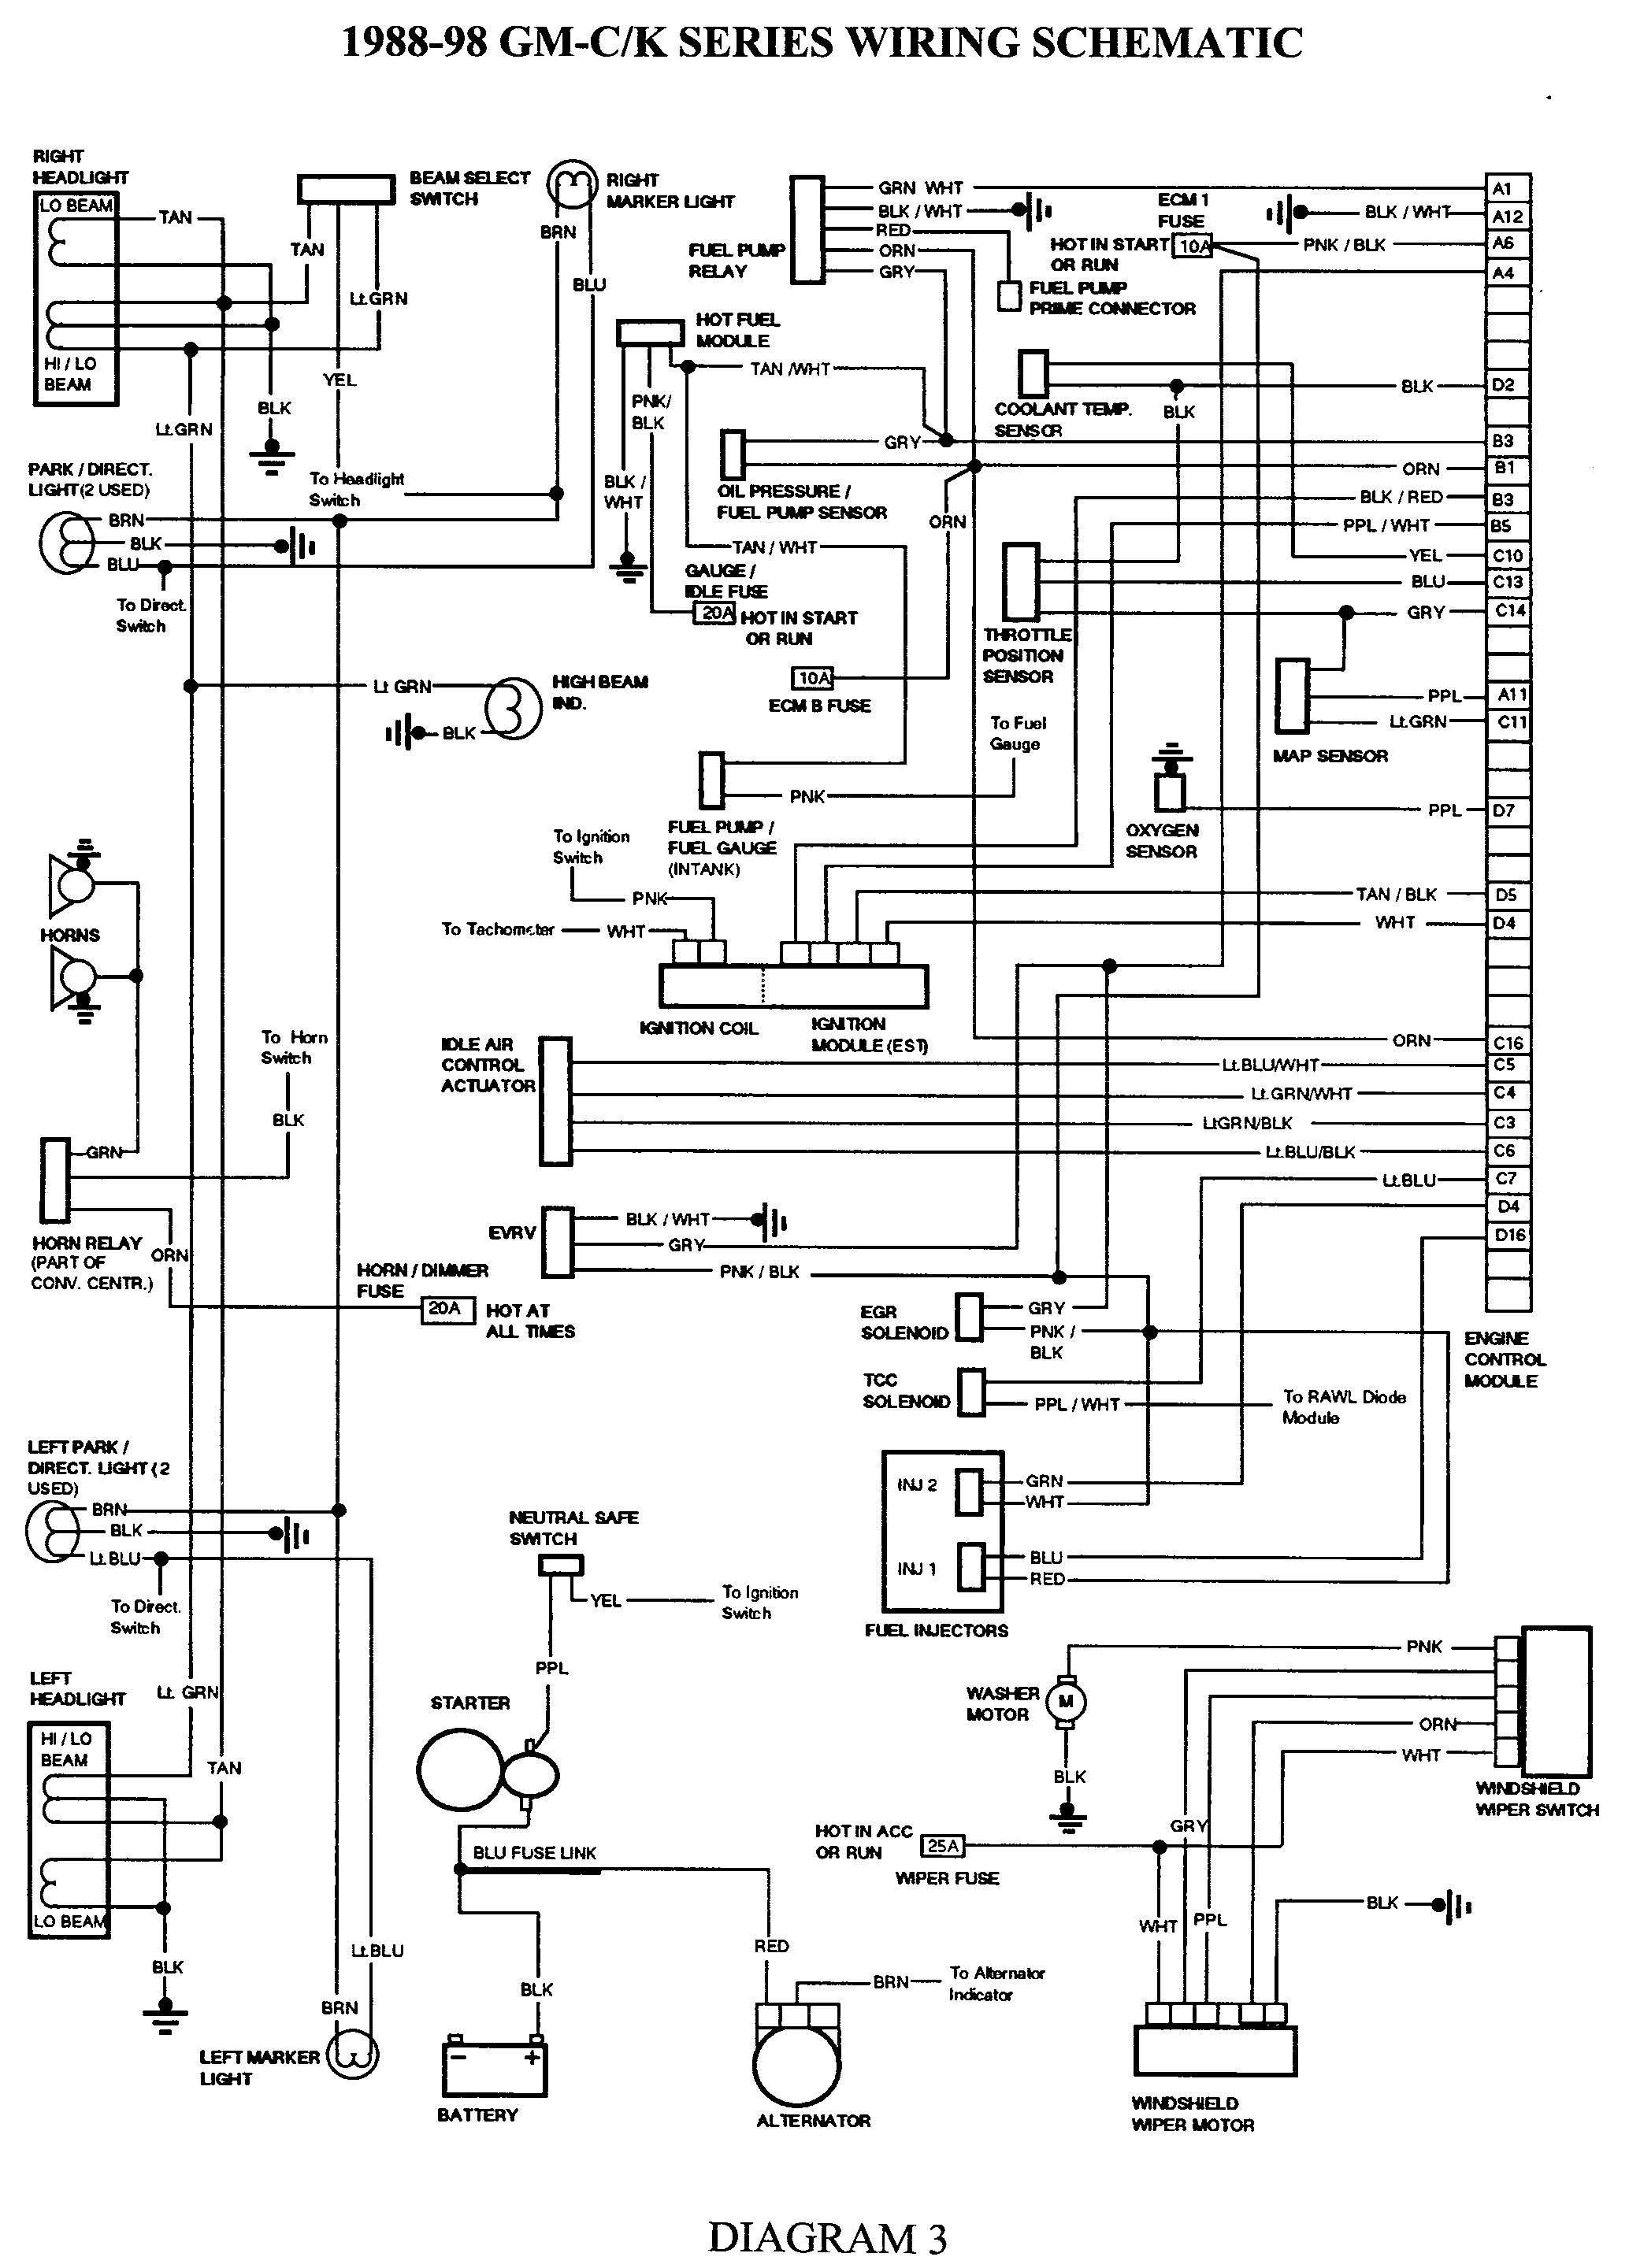 Tail Light Wiring Diagram 199 Chevy Truck